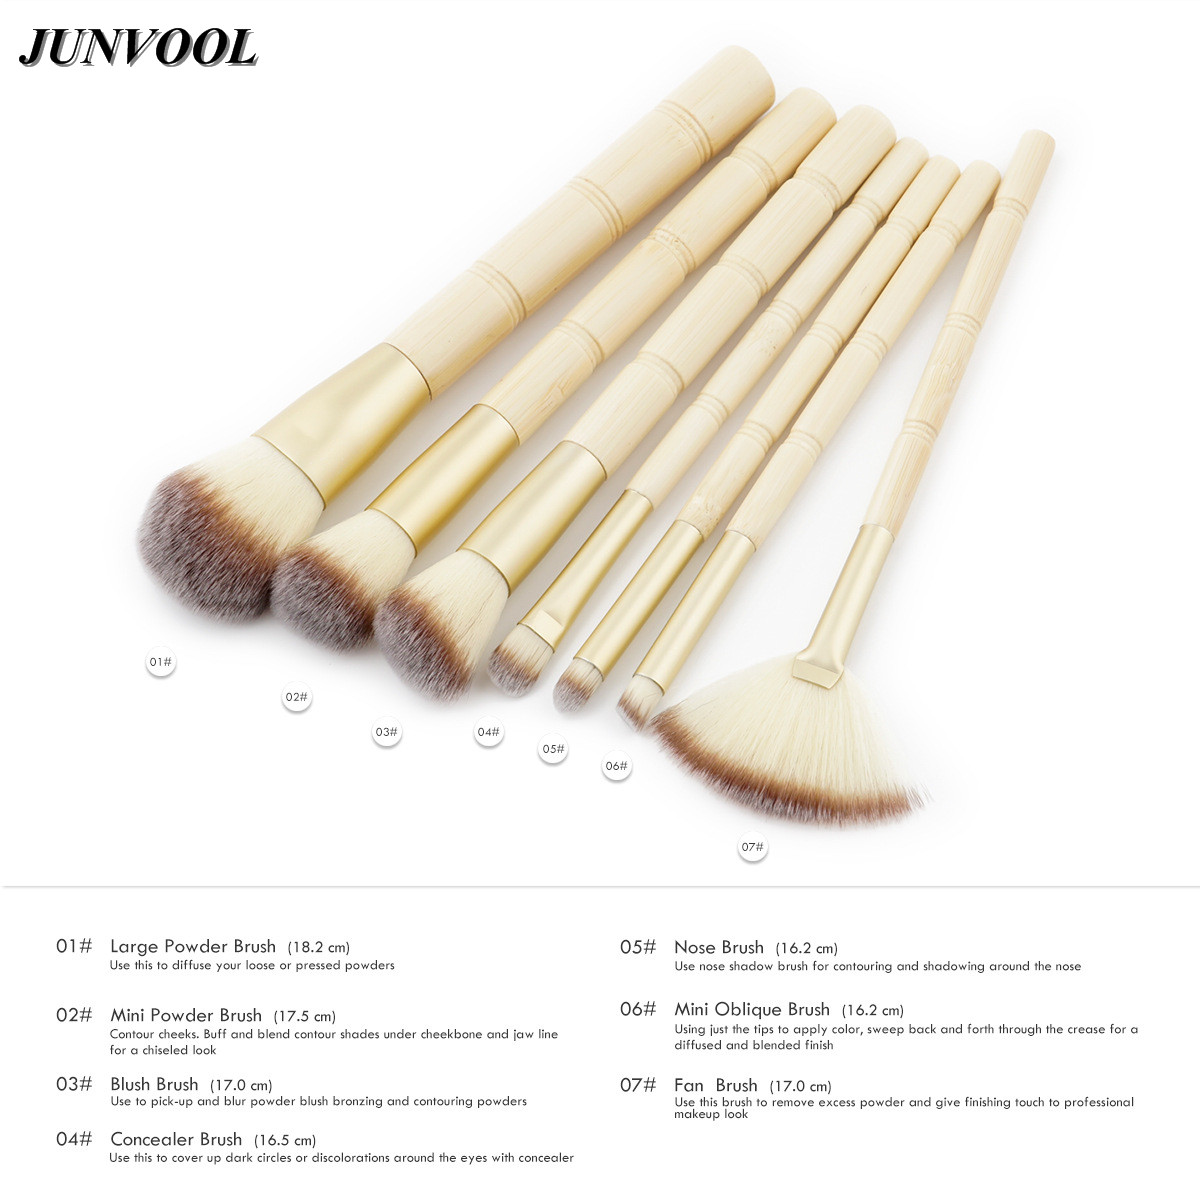 Pro Fan Brush 7Pcs Bamboo Handle Makeup Eyeshadow Blush Concealer Brushes Set Powder Foundation Facial Multifunction Beauty Tool 1pc multifunction makeup brushes and 15 color concealer oblique wooden handle mask powder facial face cream set beauty tools